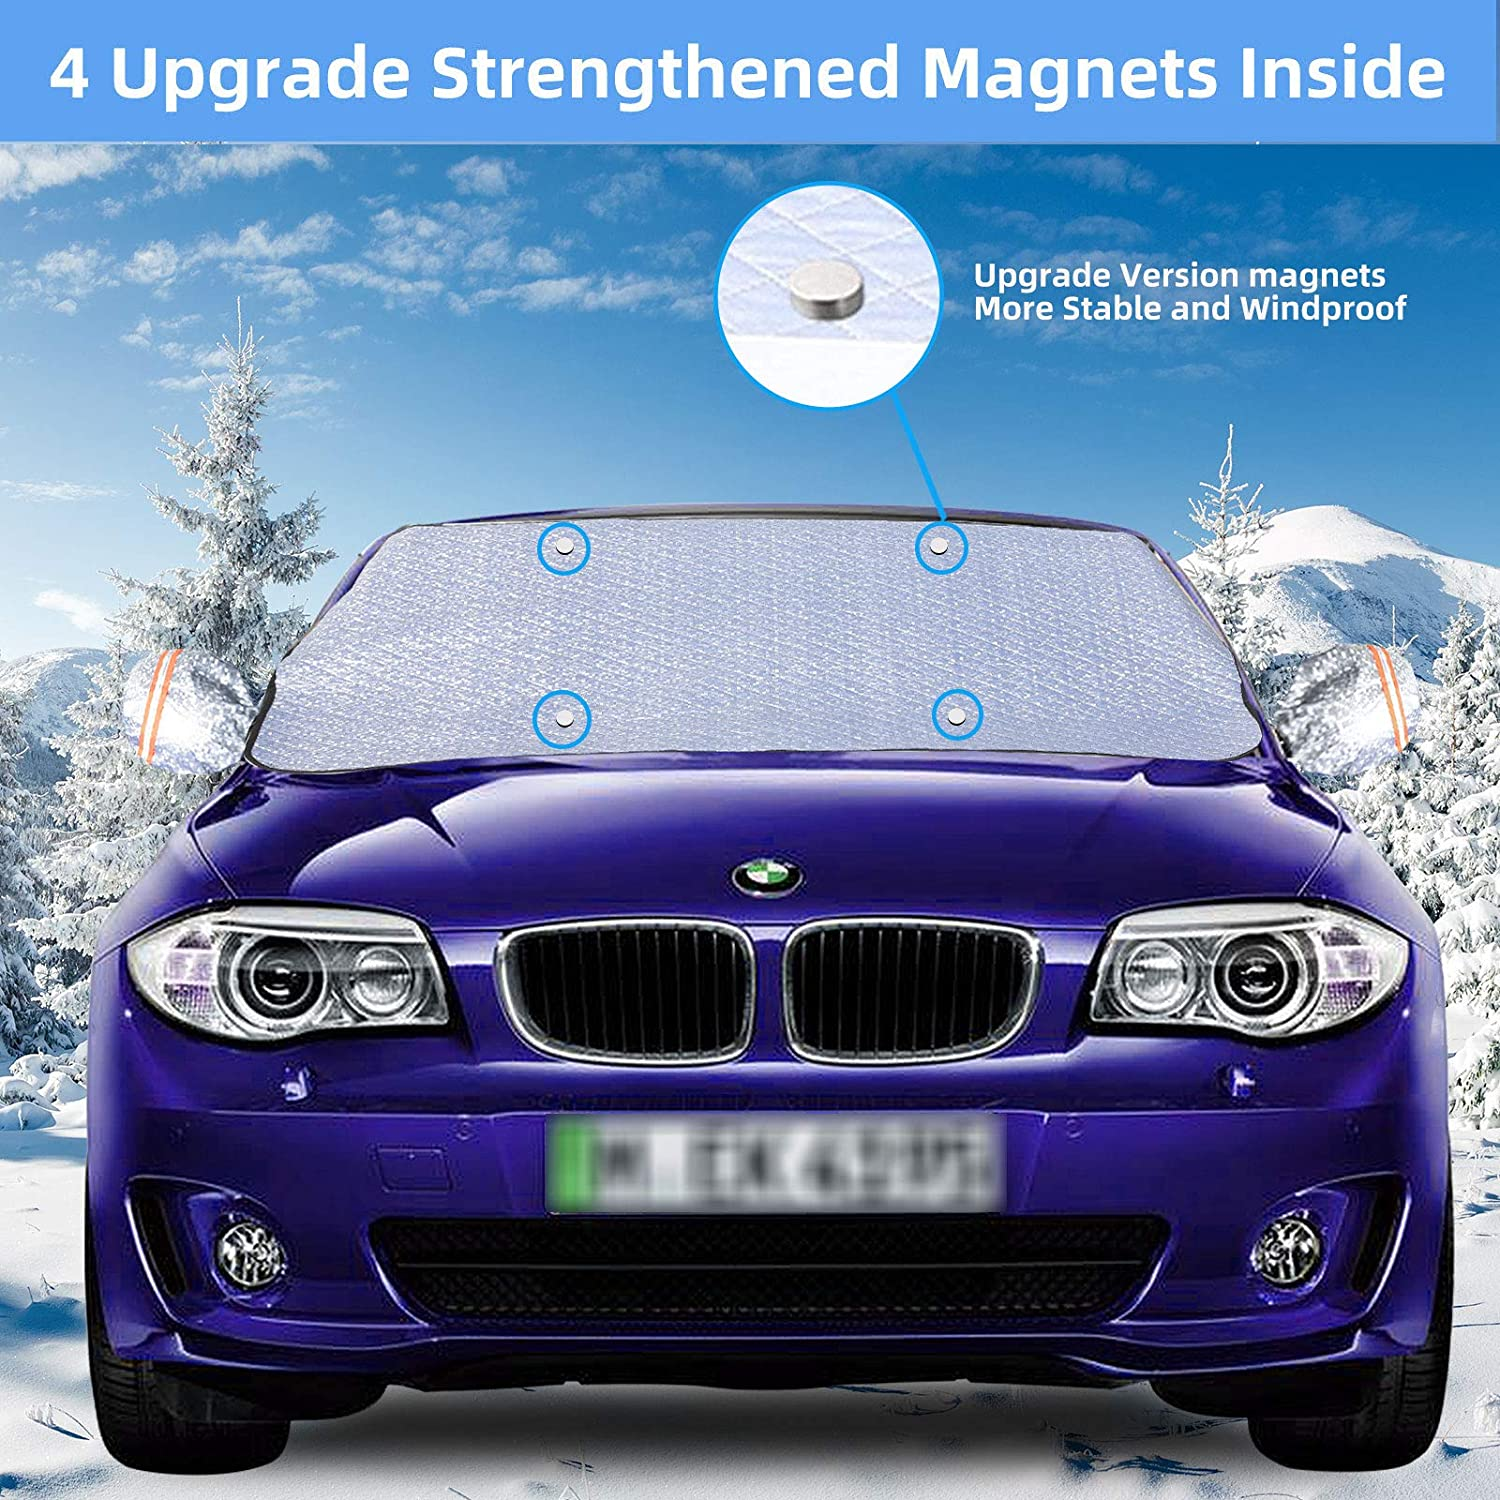 XL Size Thicker Windshield Snow Cover for Ice Frost Sun Rain GAMURRY Windshield Snow Ice Cover 2020 Upgrade Car Windshield Snow Cover Ice Removal with Side Mirror Covers Fit for Most Cars Snow